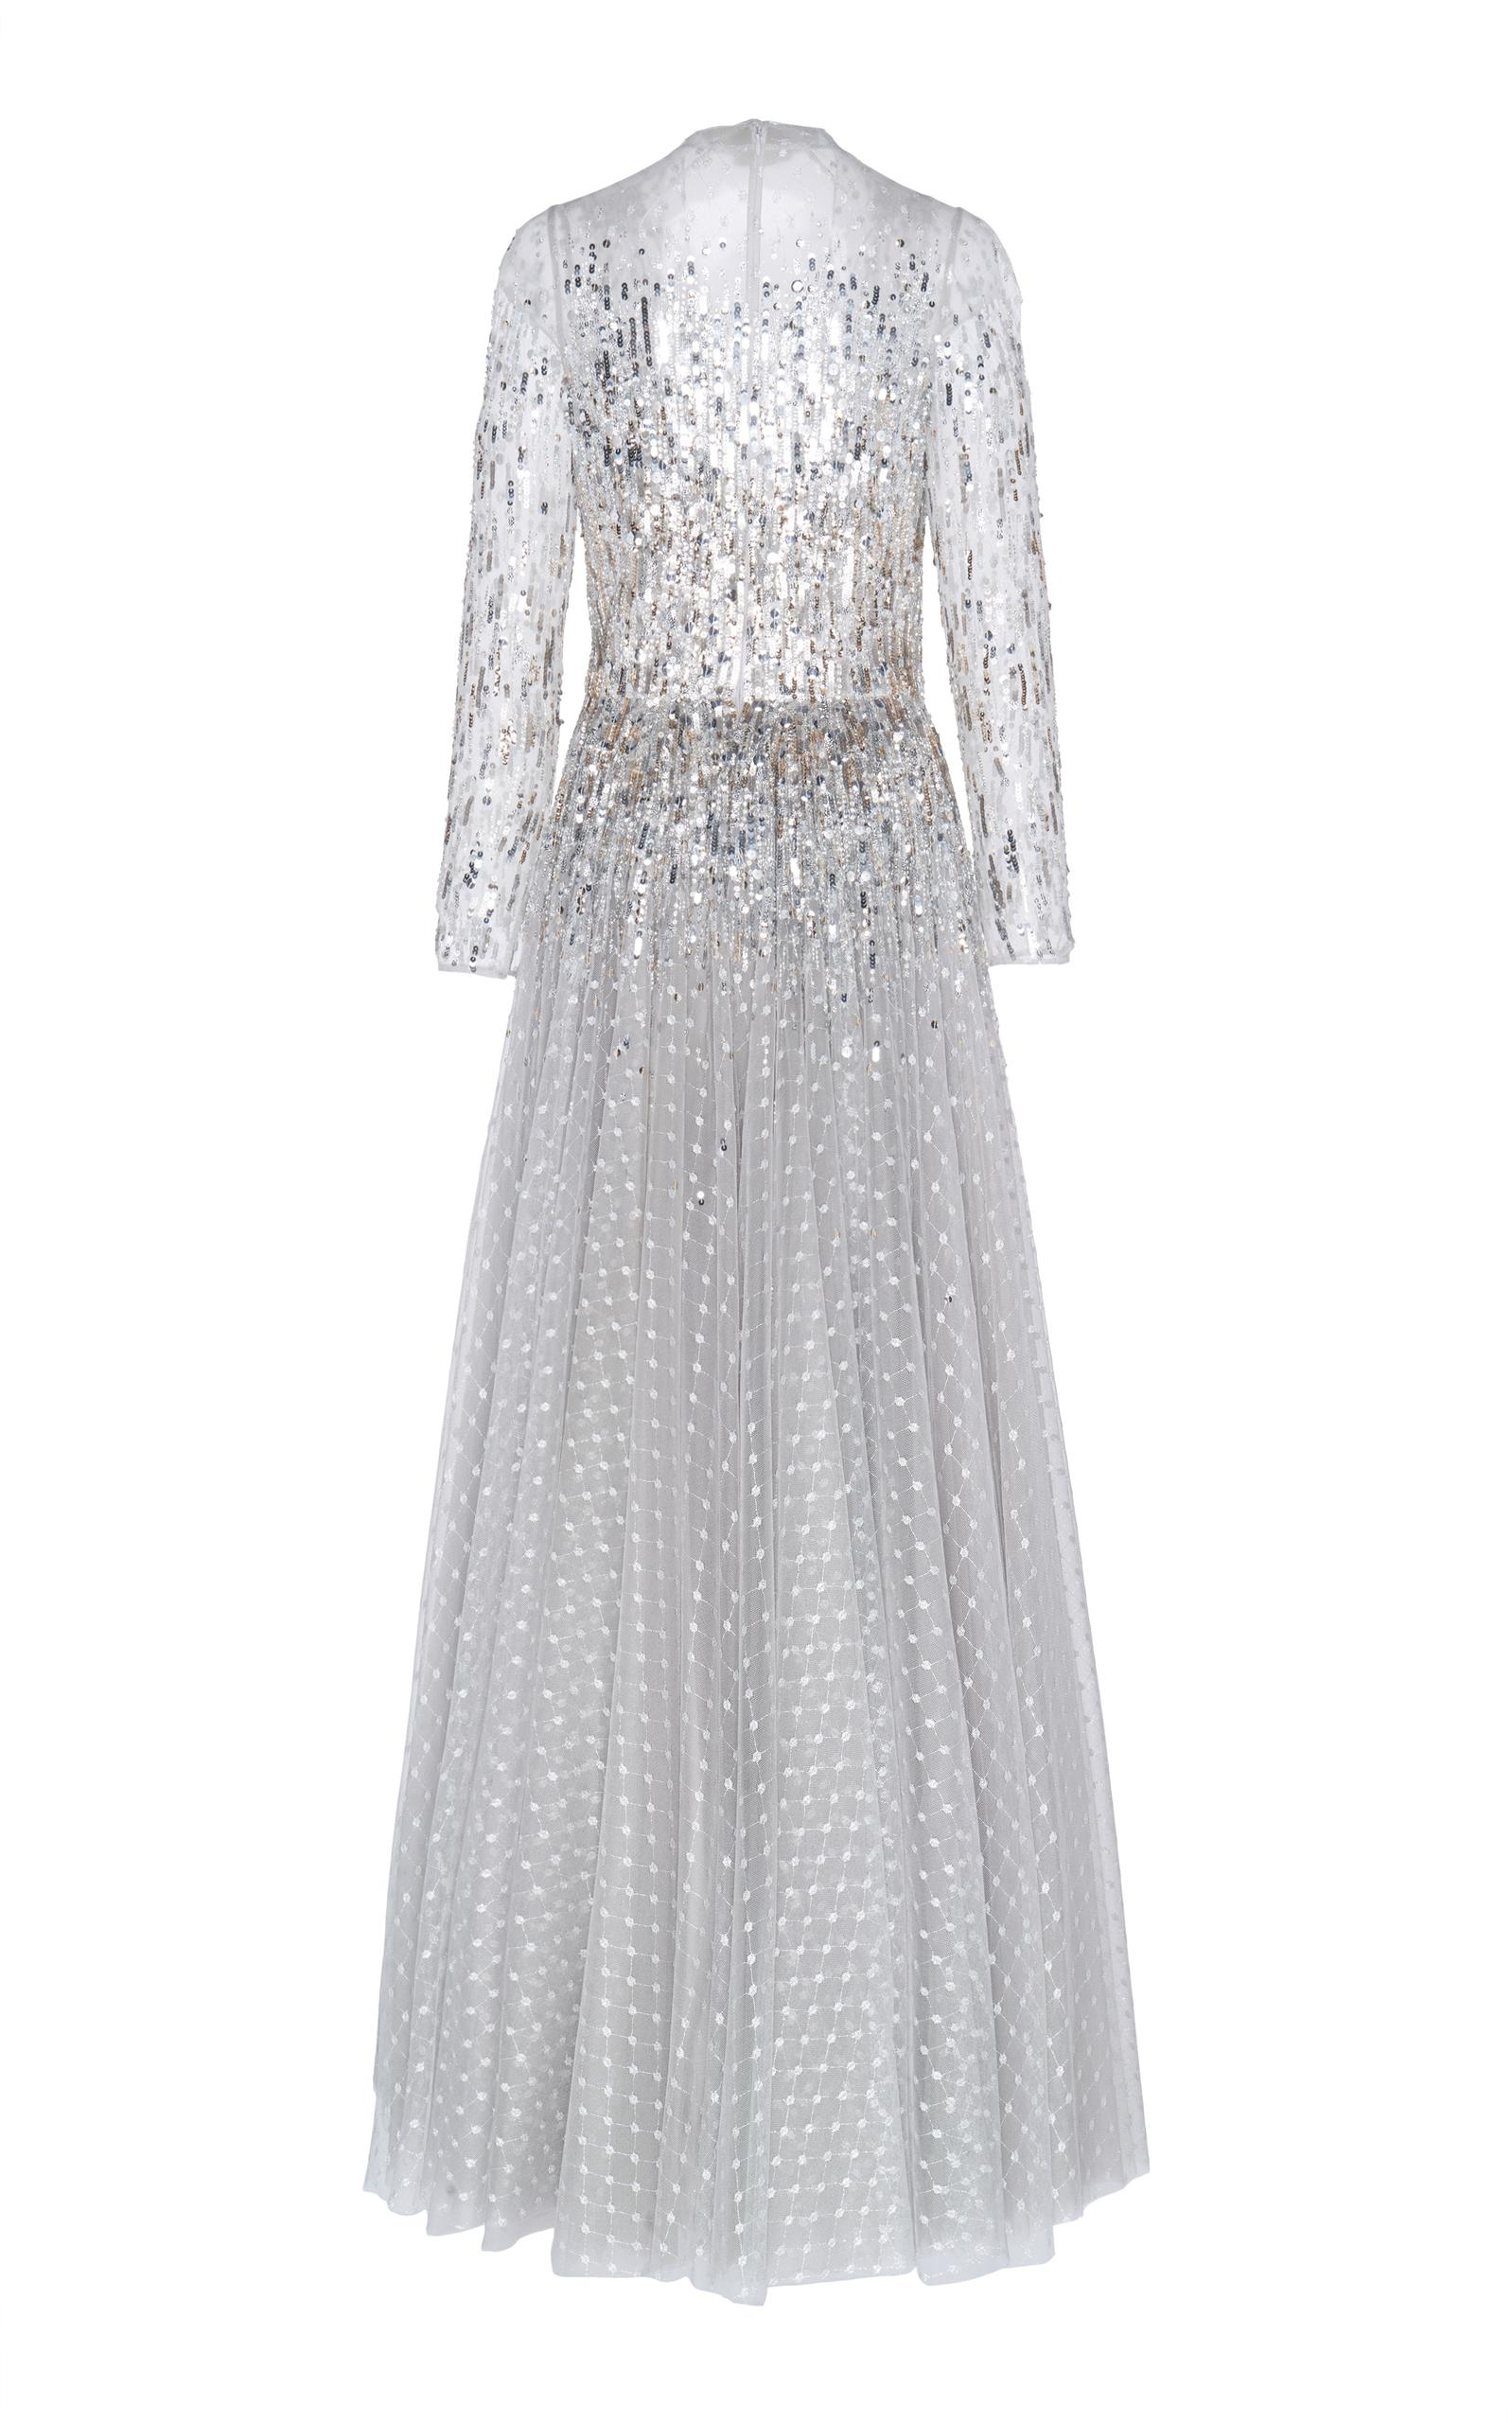 Jenny Packham Blanche Sequin Bodice Gown in Metallic - Lyst